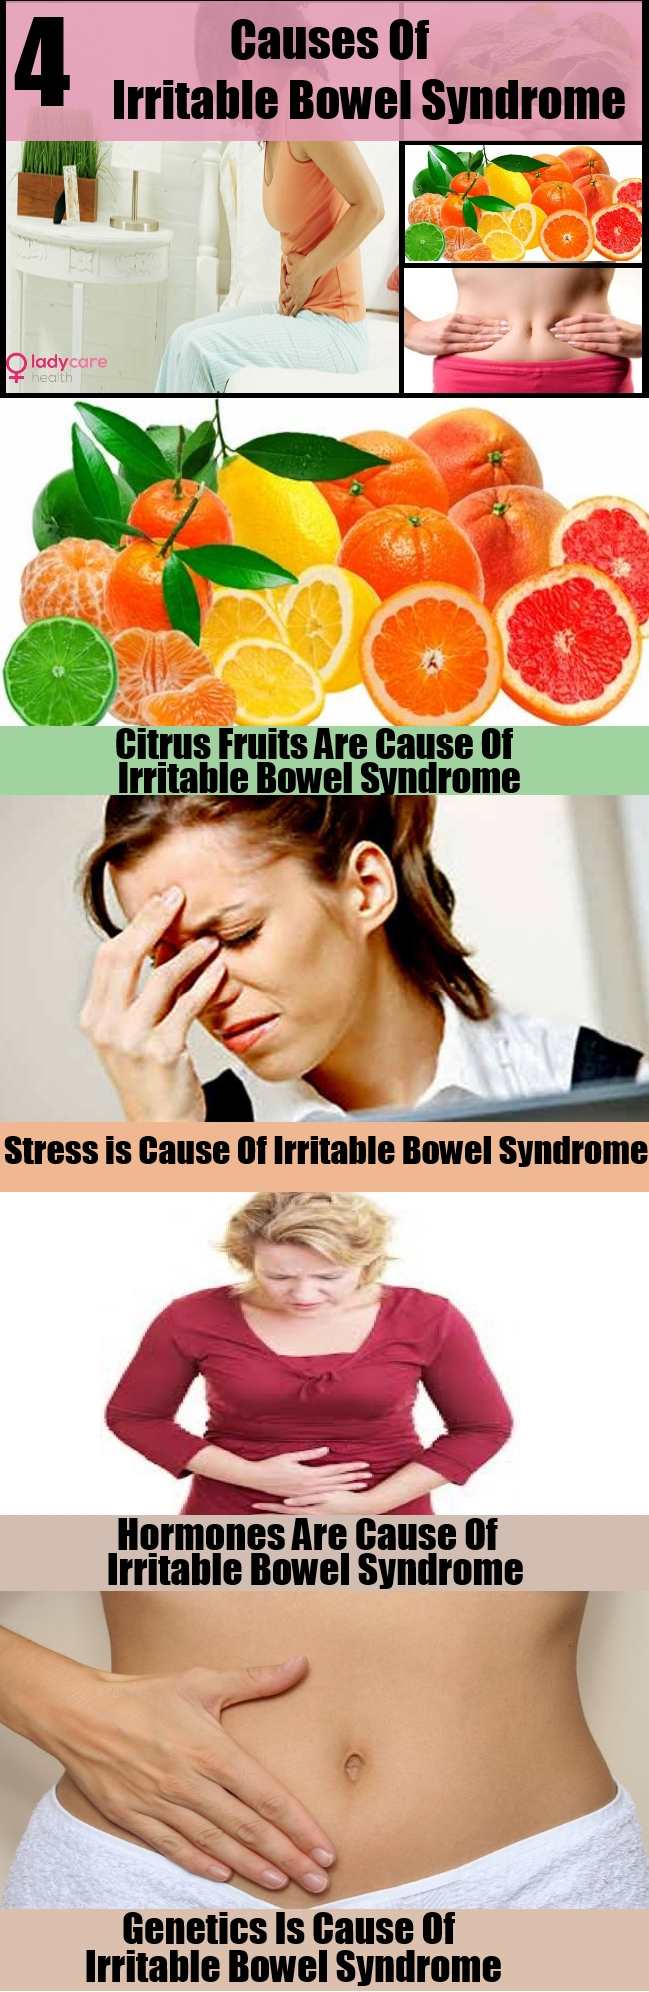 4 Main Causes Of Irritable Bowel Syndrome